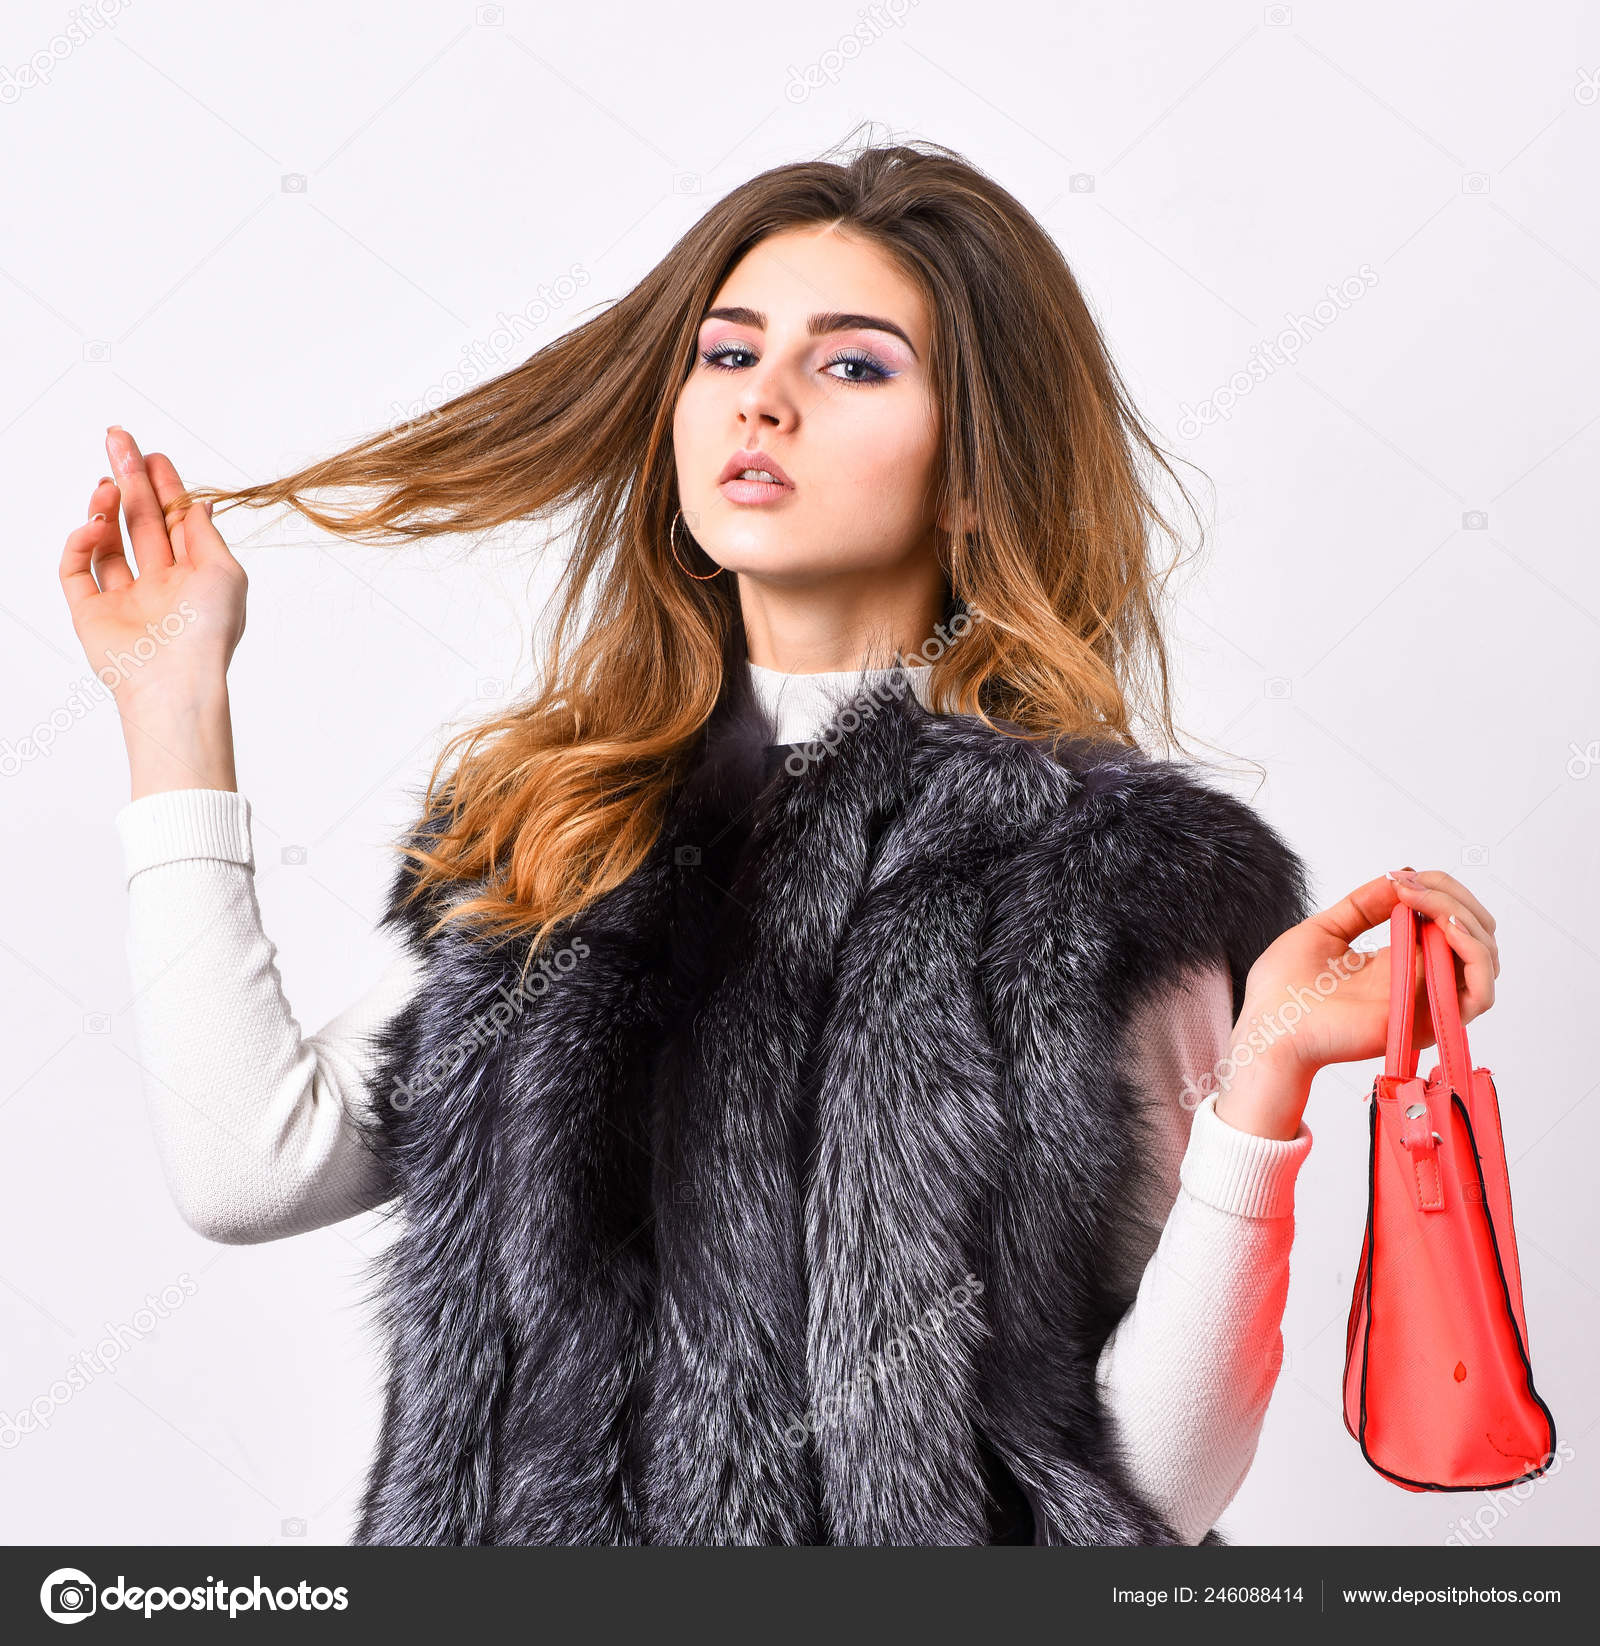 fea4eee0 Female stylish fashion model. Fashion stylish accessory. Fashion and  shopping concept. Woman in fur coat with handbag ...